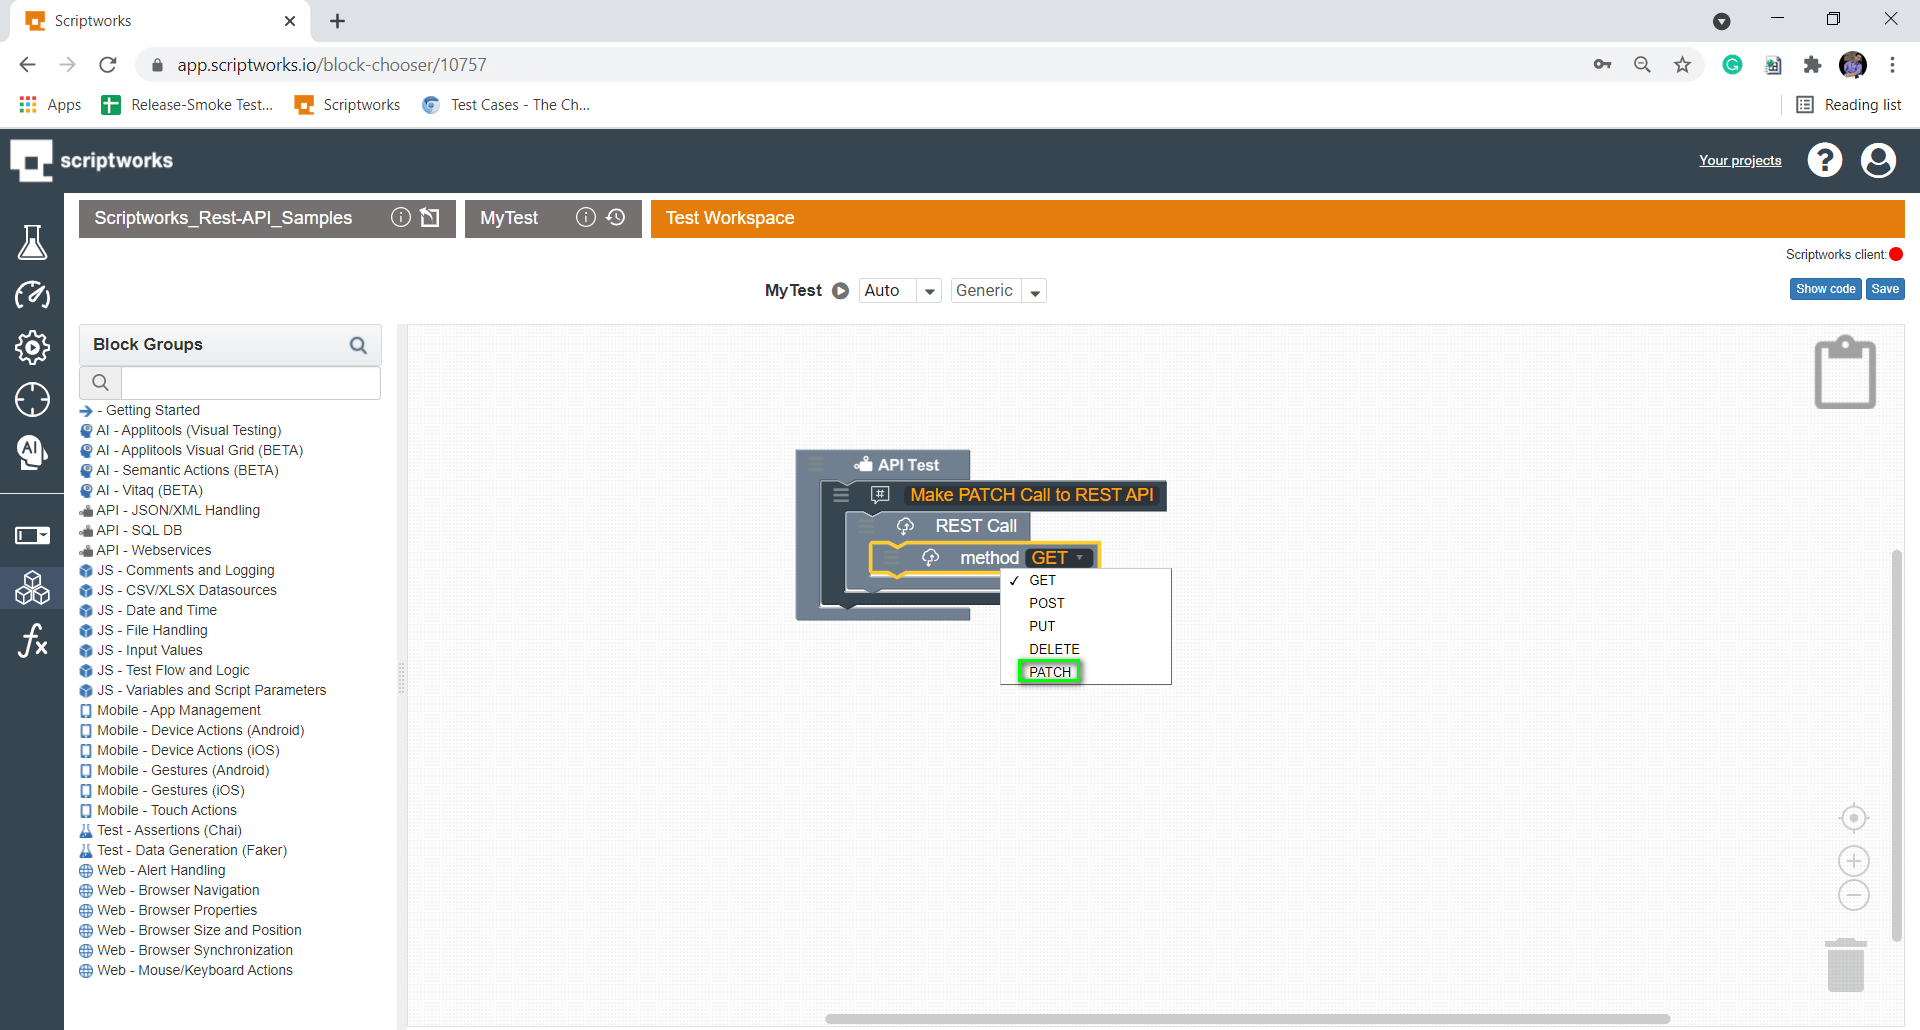 Select Patch Method from the Drop Down